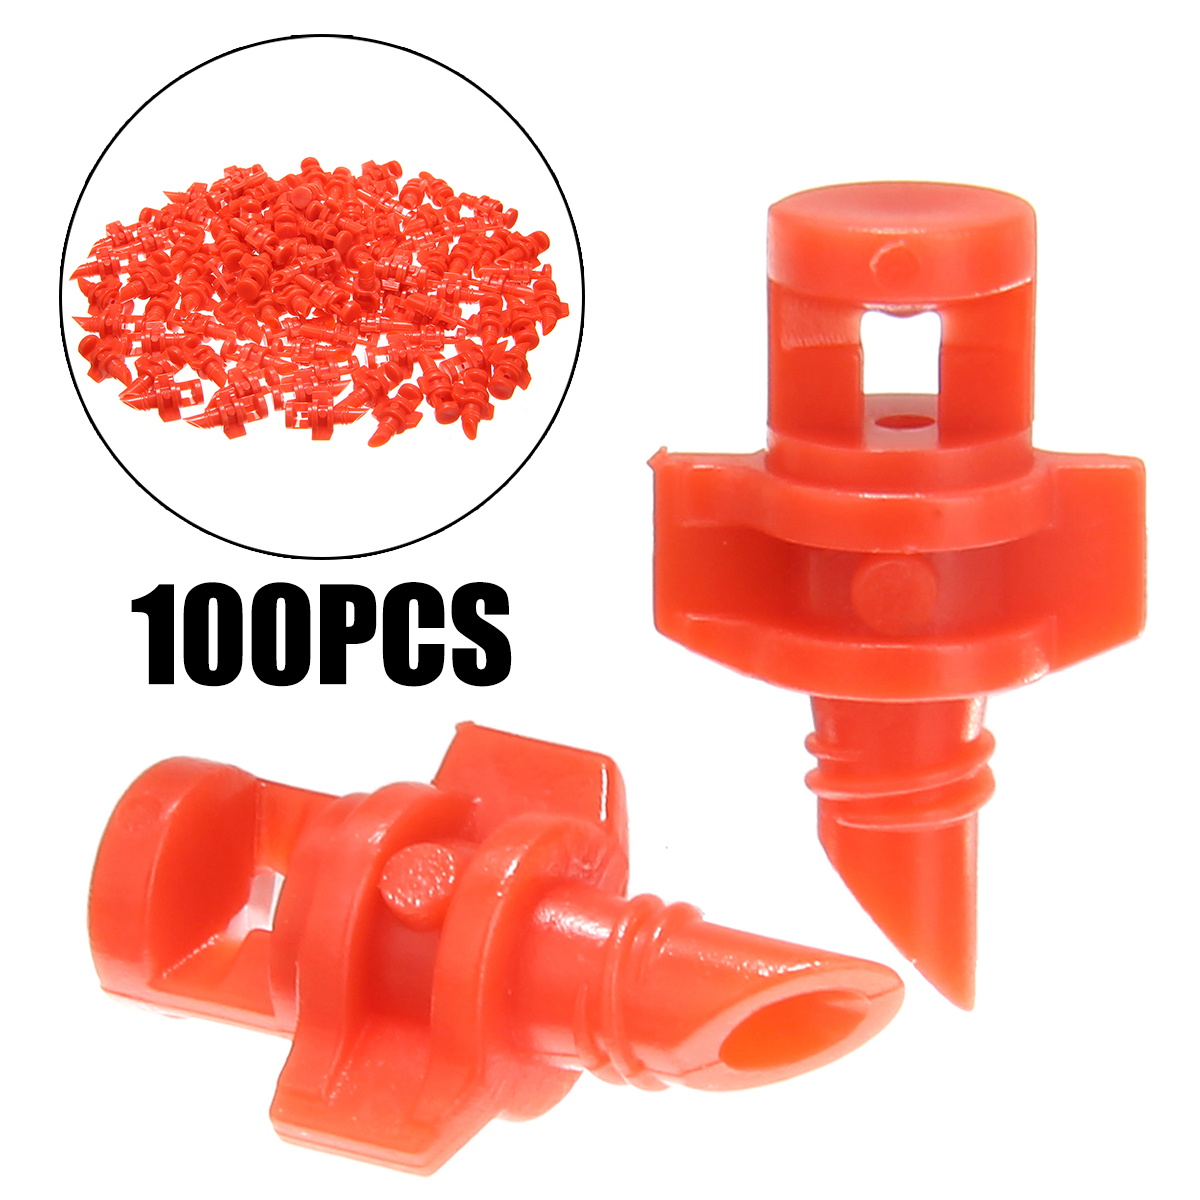 100PCS/pack 360 Degree Refraction Misting Nozzle Garden Irrigation Sprinkler For Plant Spray Nozzle Mist Sprayer Irrigation